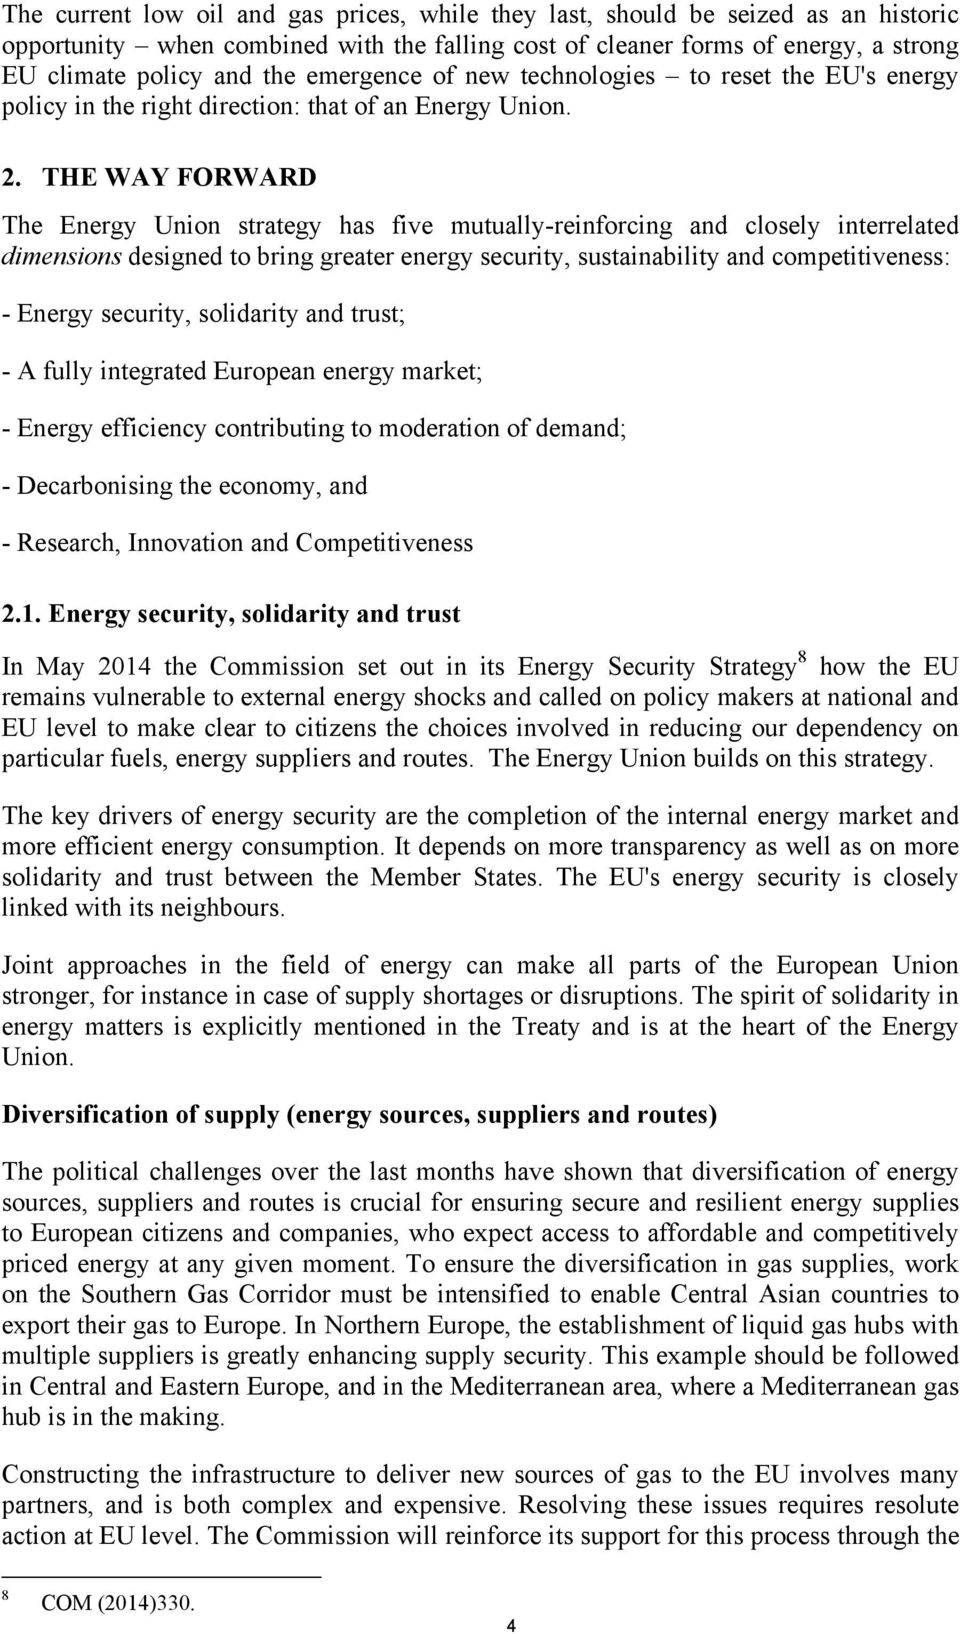 THE WAY FORWARD The Energy Union strategy has five mutually-reinforcing and closely interrelated dimensions designed to bring greater energy security, sustainability and competitiveness: - Energy